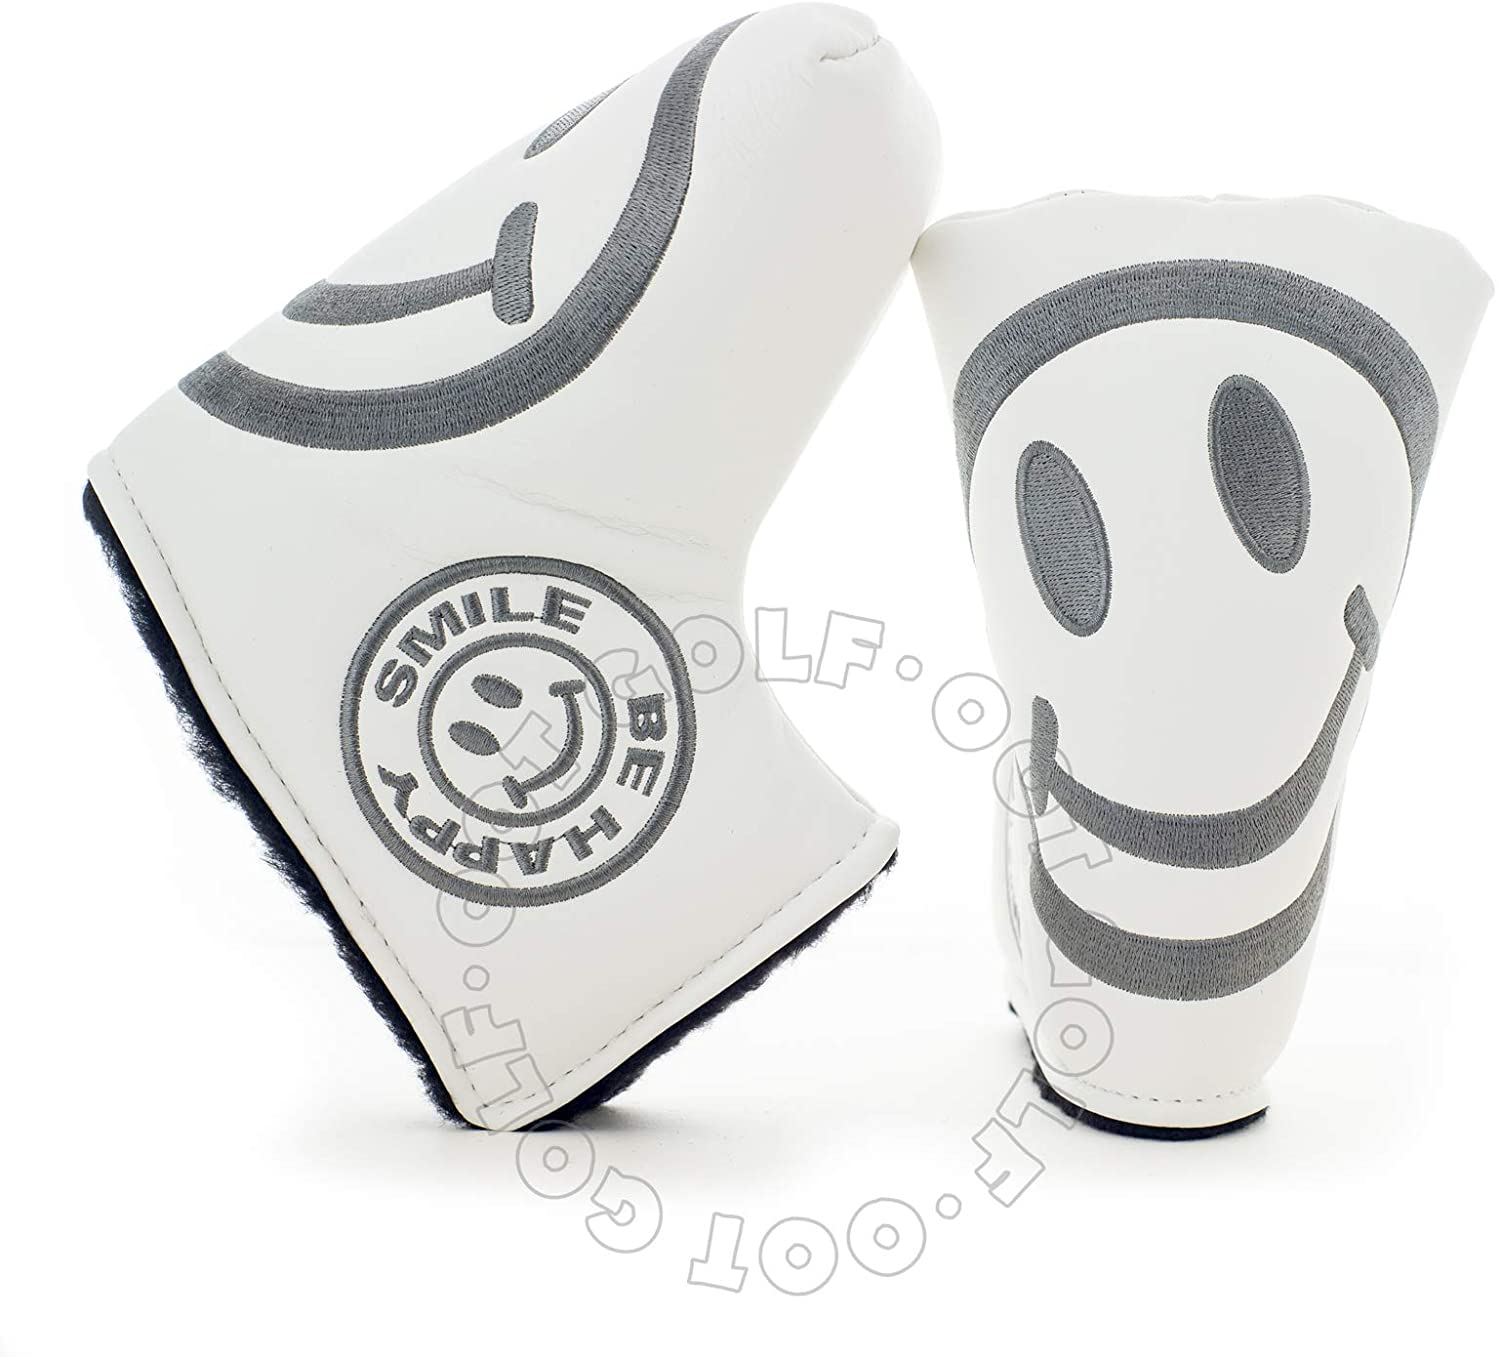 19th Hole Custom Shop Smile Face Golf Headcover for Blade and Midsize Mallet Putter, White, Head Cover